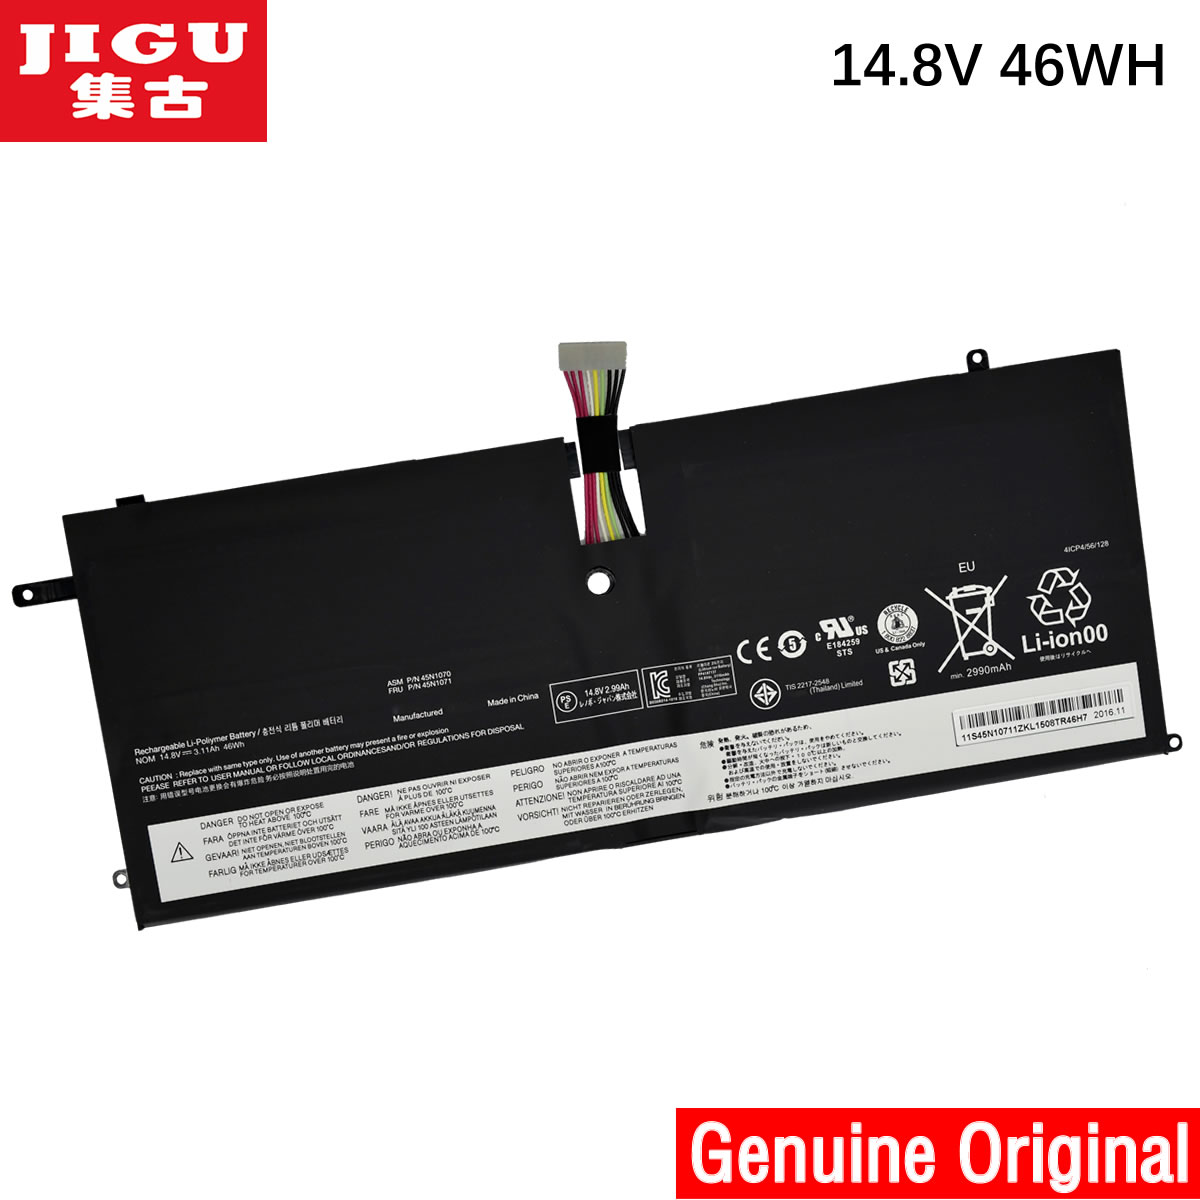 JIGU 45N1070 45N1071 4ICP4/51/95 Original laptop Battery For Lenovo ThinkPad New X1 Carbon X1C 14.8V 46WH 14 8v 46wh new original laptop battery for lenovo thinkpad x1c carbon 45n1070 45n1071 3444 3448 3460